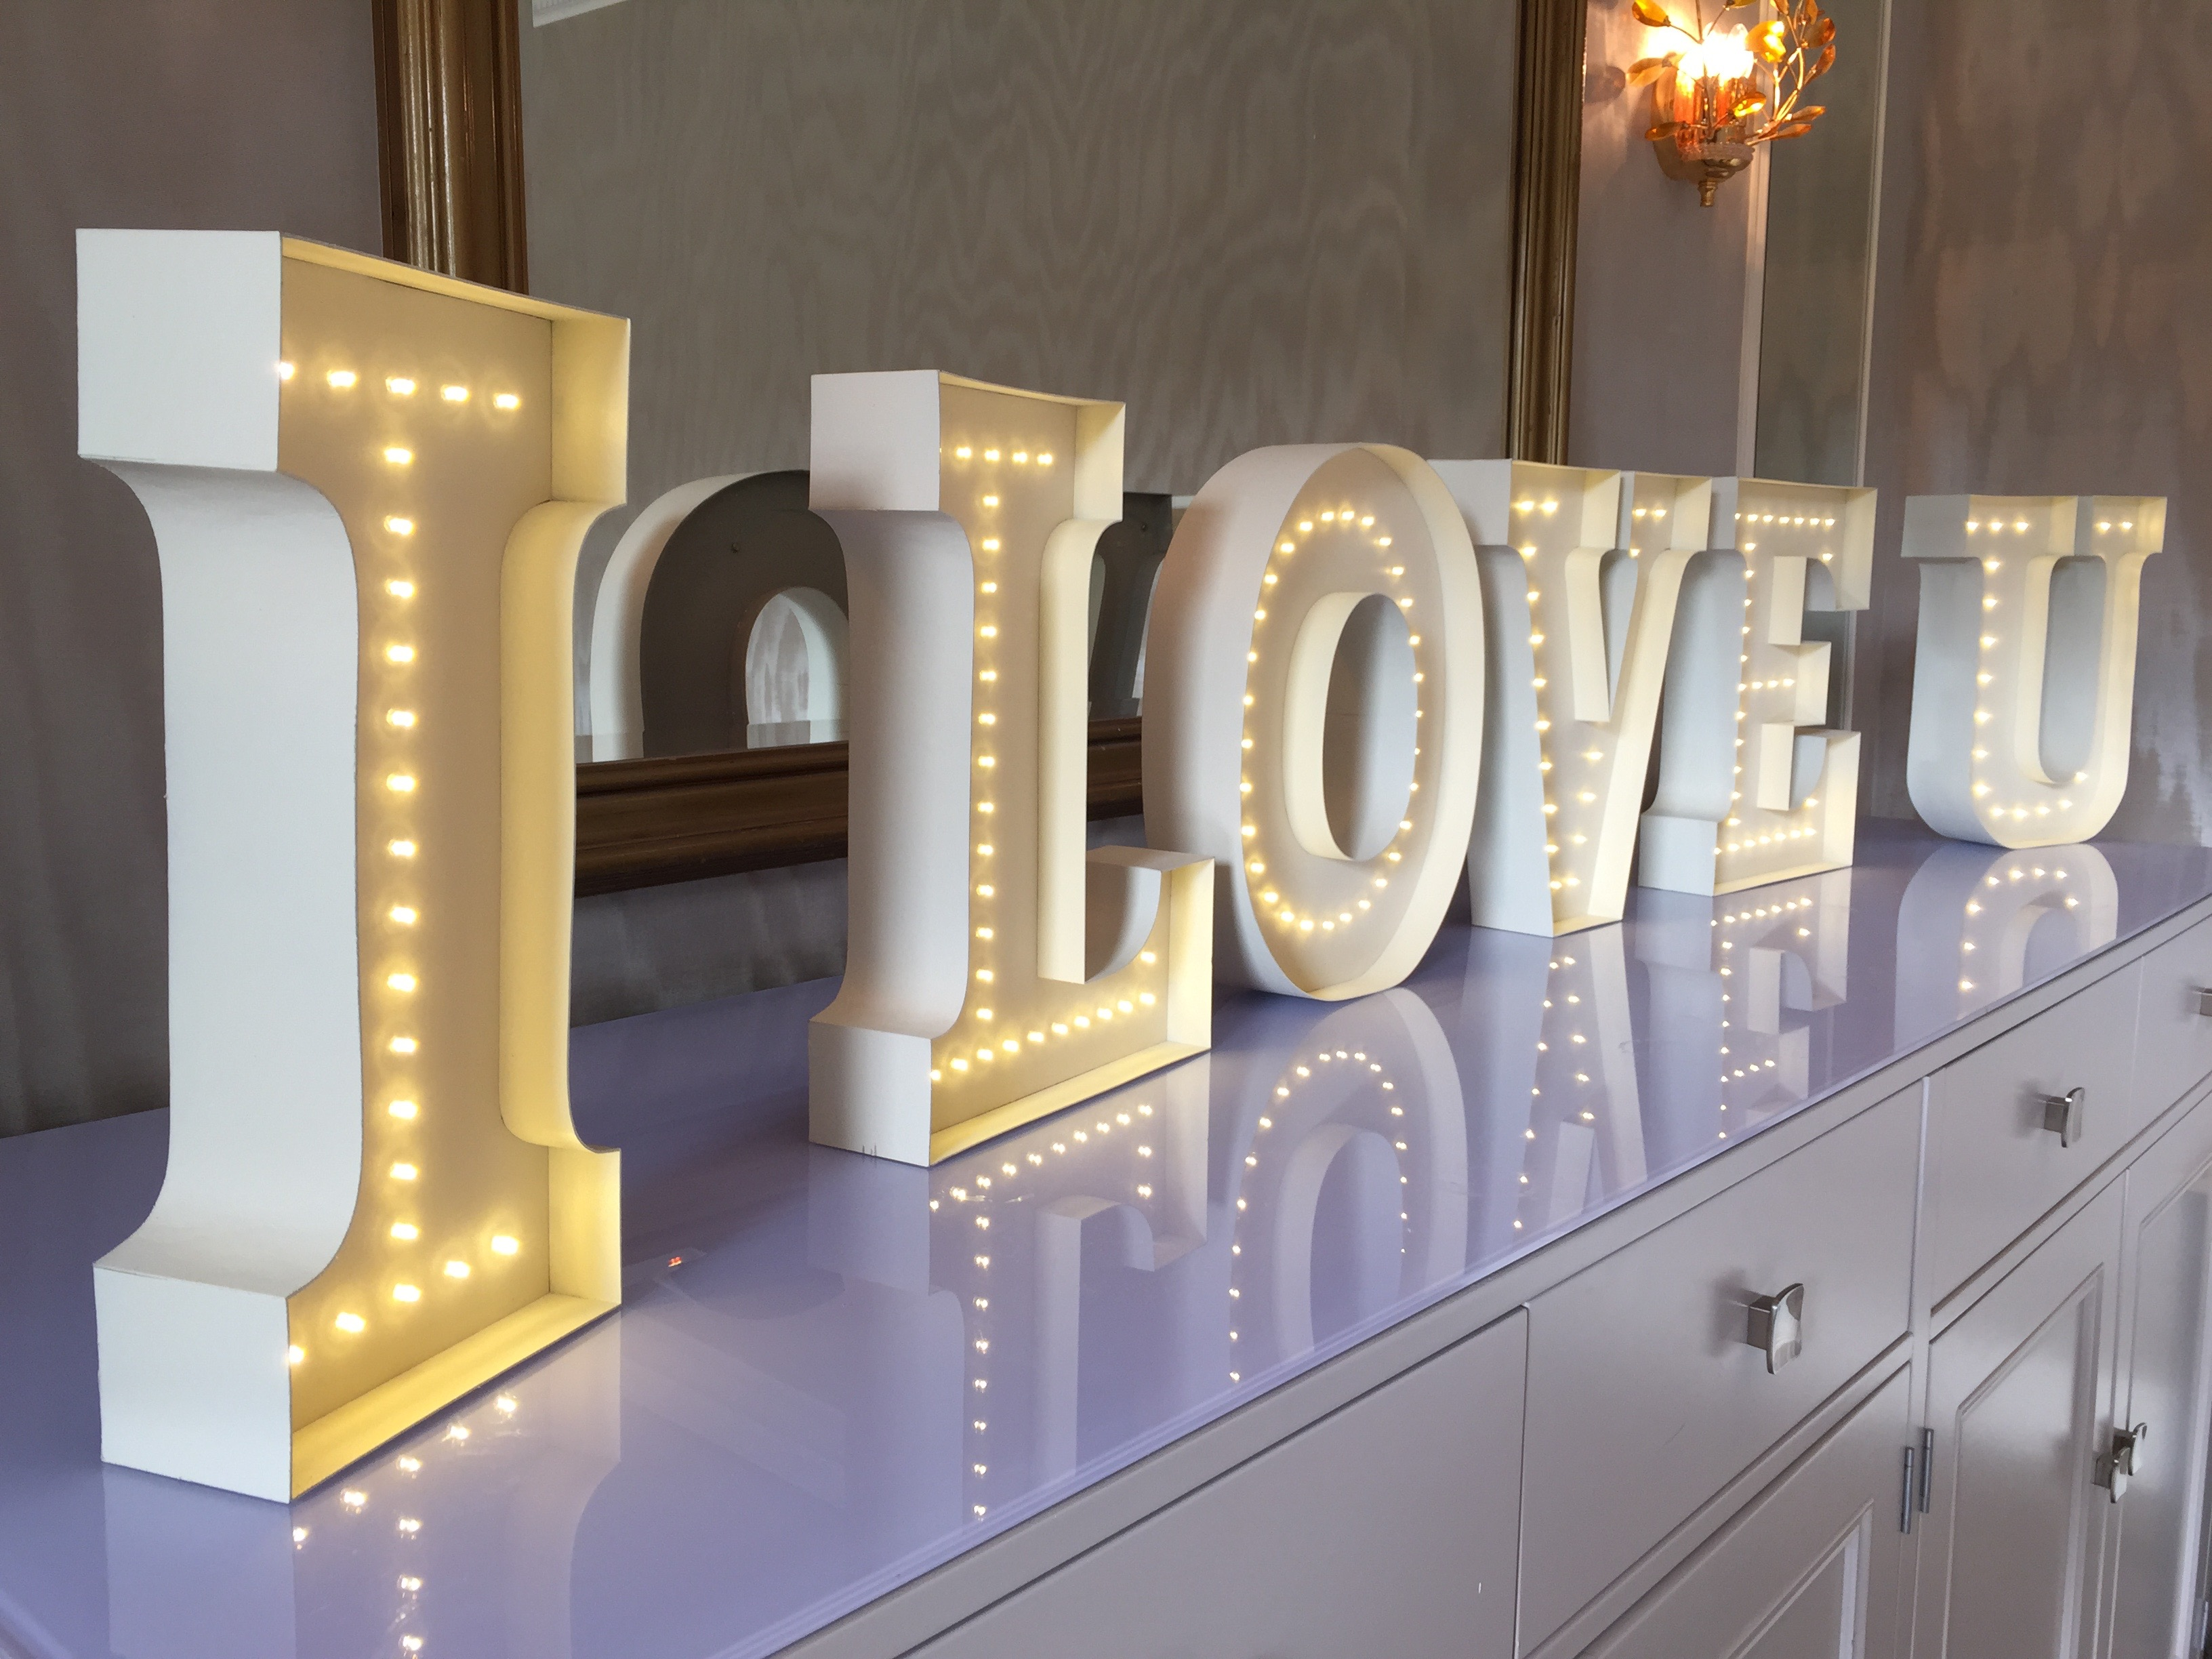 3D Letters - I LOVE U led letters